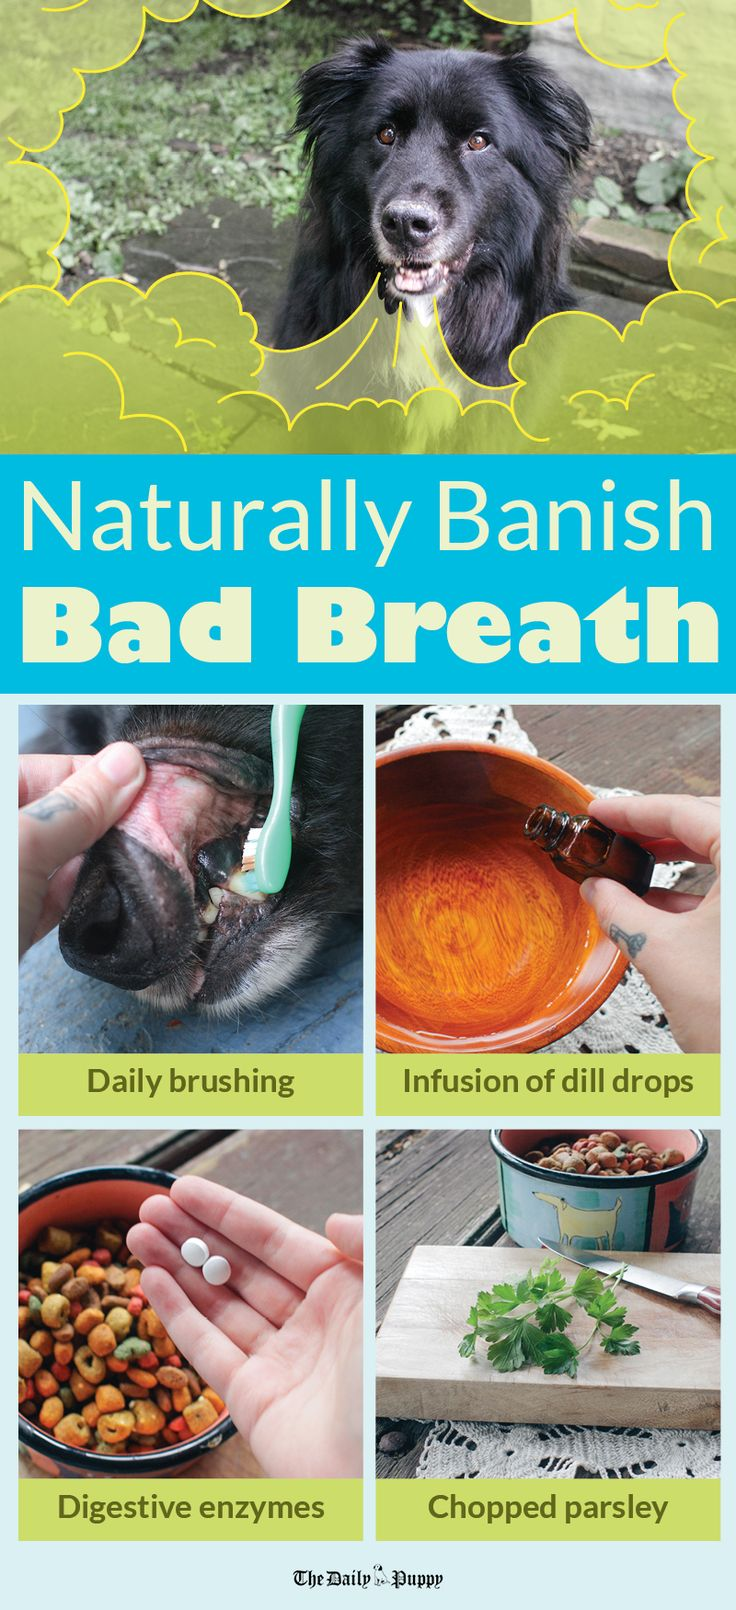 Whew, dog breath can be rough sometimes!  If your pup's breath could use a tune up, click through to see some natural ways to help freshen it up.